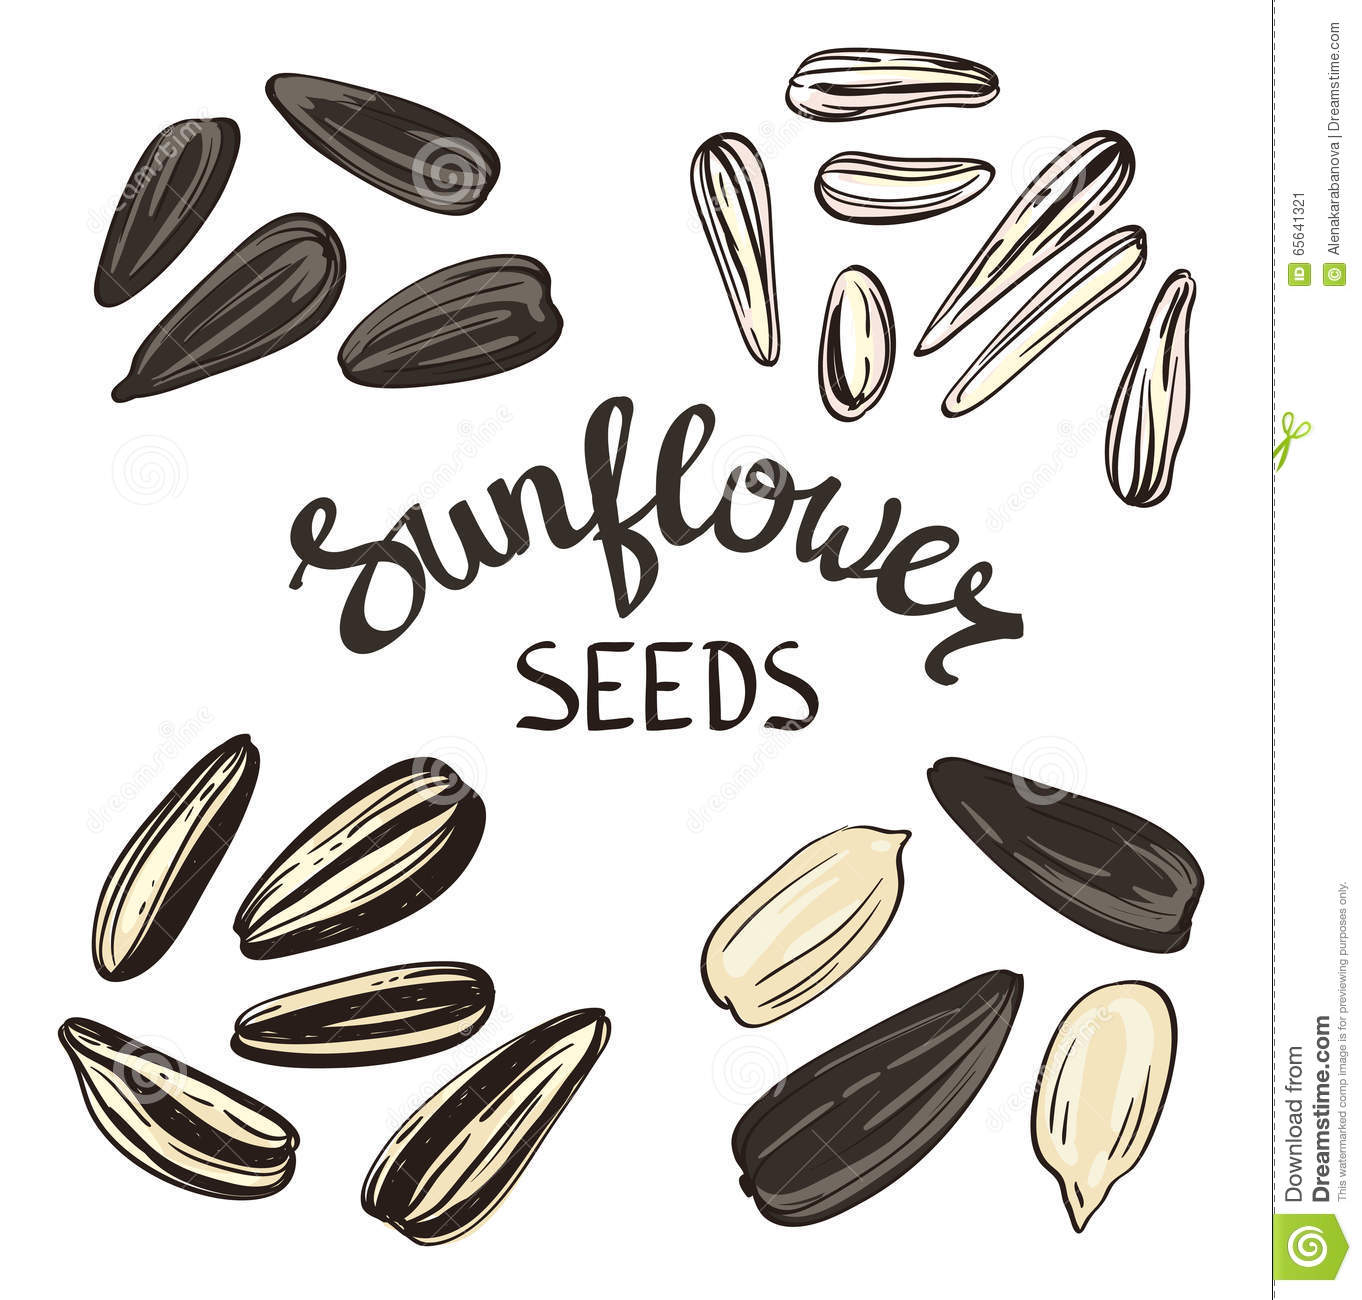 david sunflower seeds clipart - photo #25